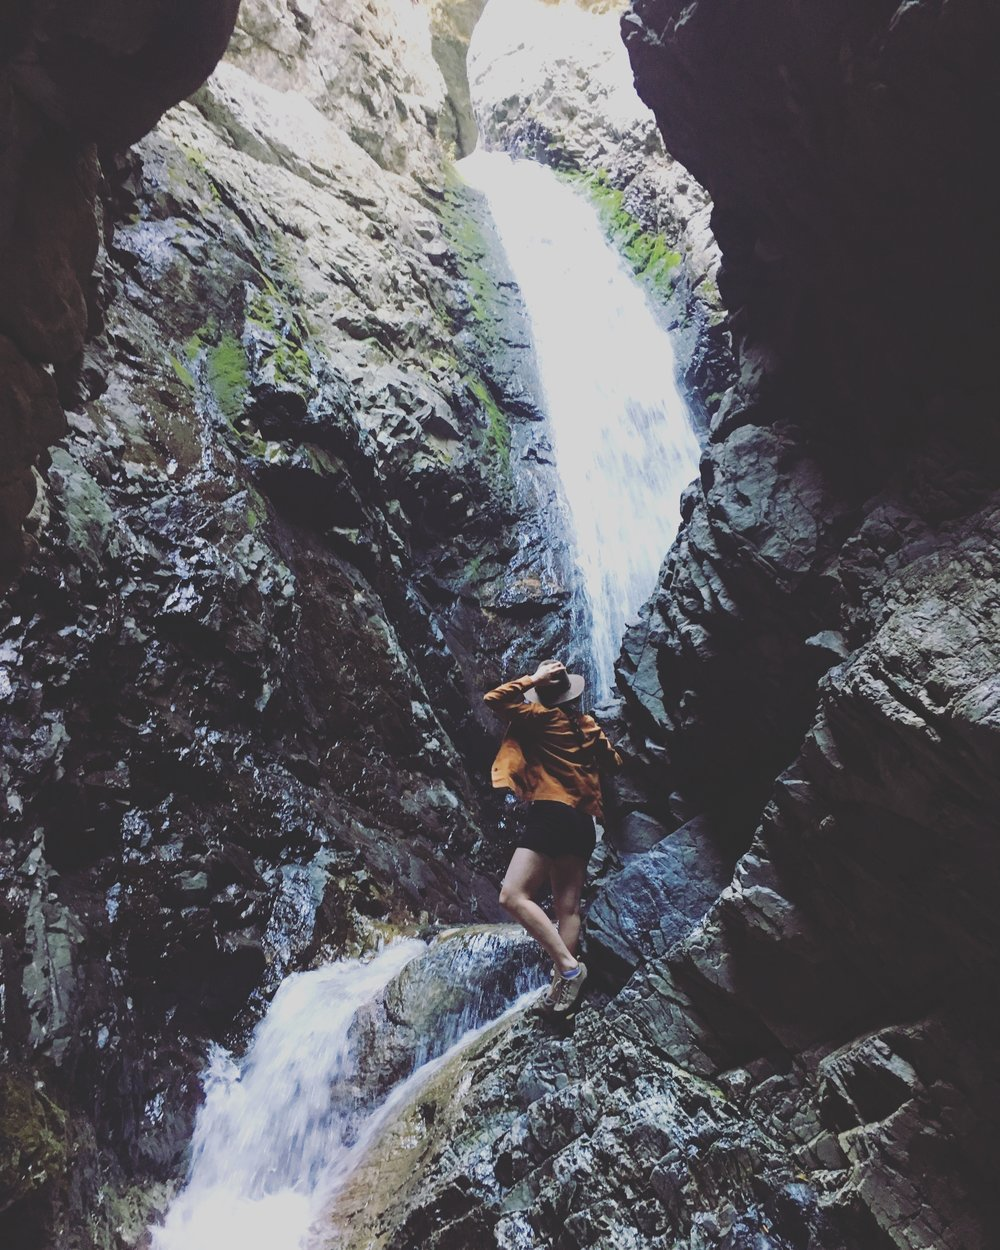 Ashley at Zapata Falls in Colorado during her cross-country drive to California